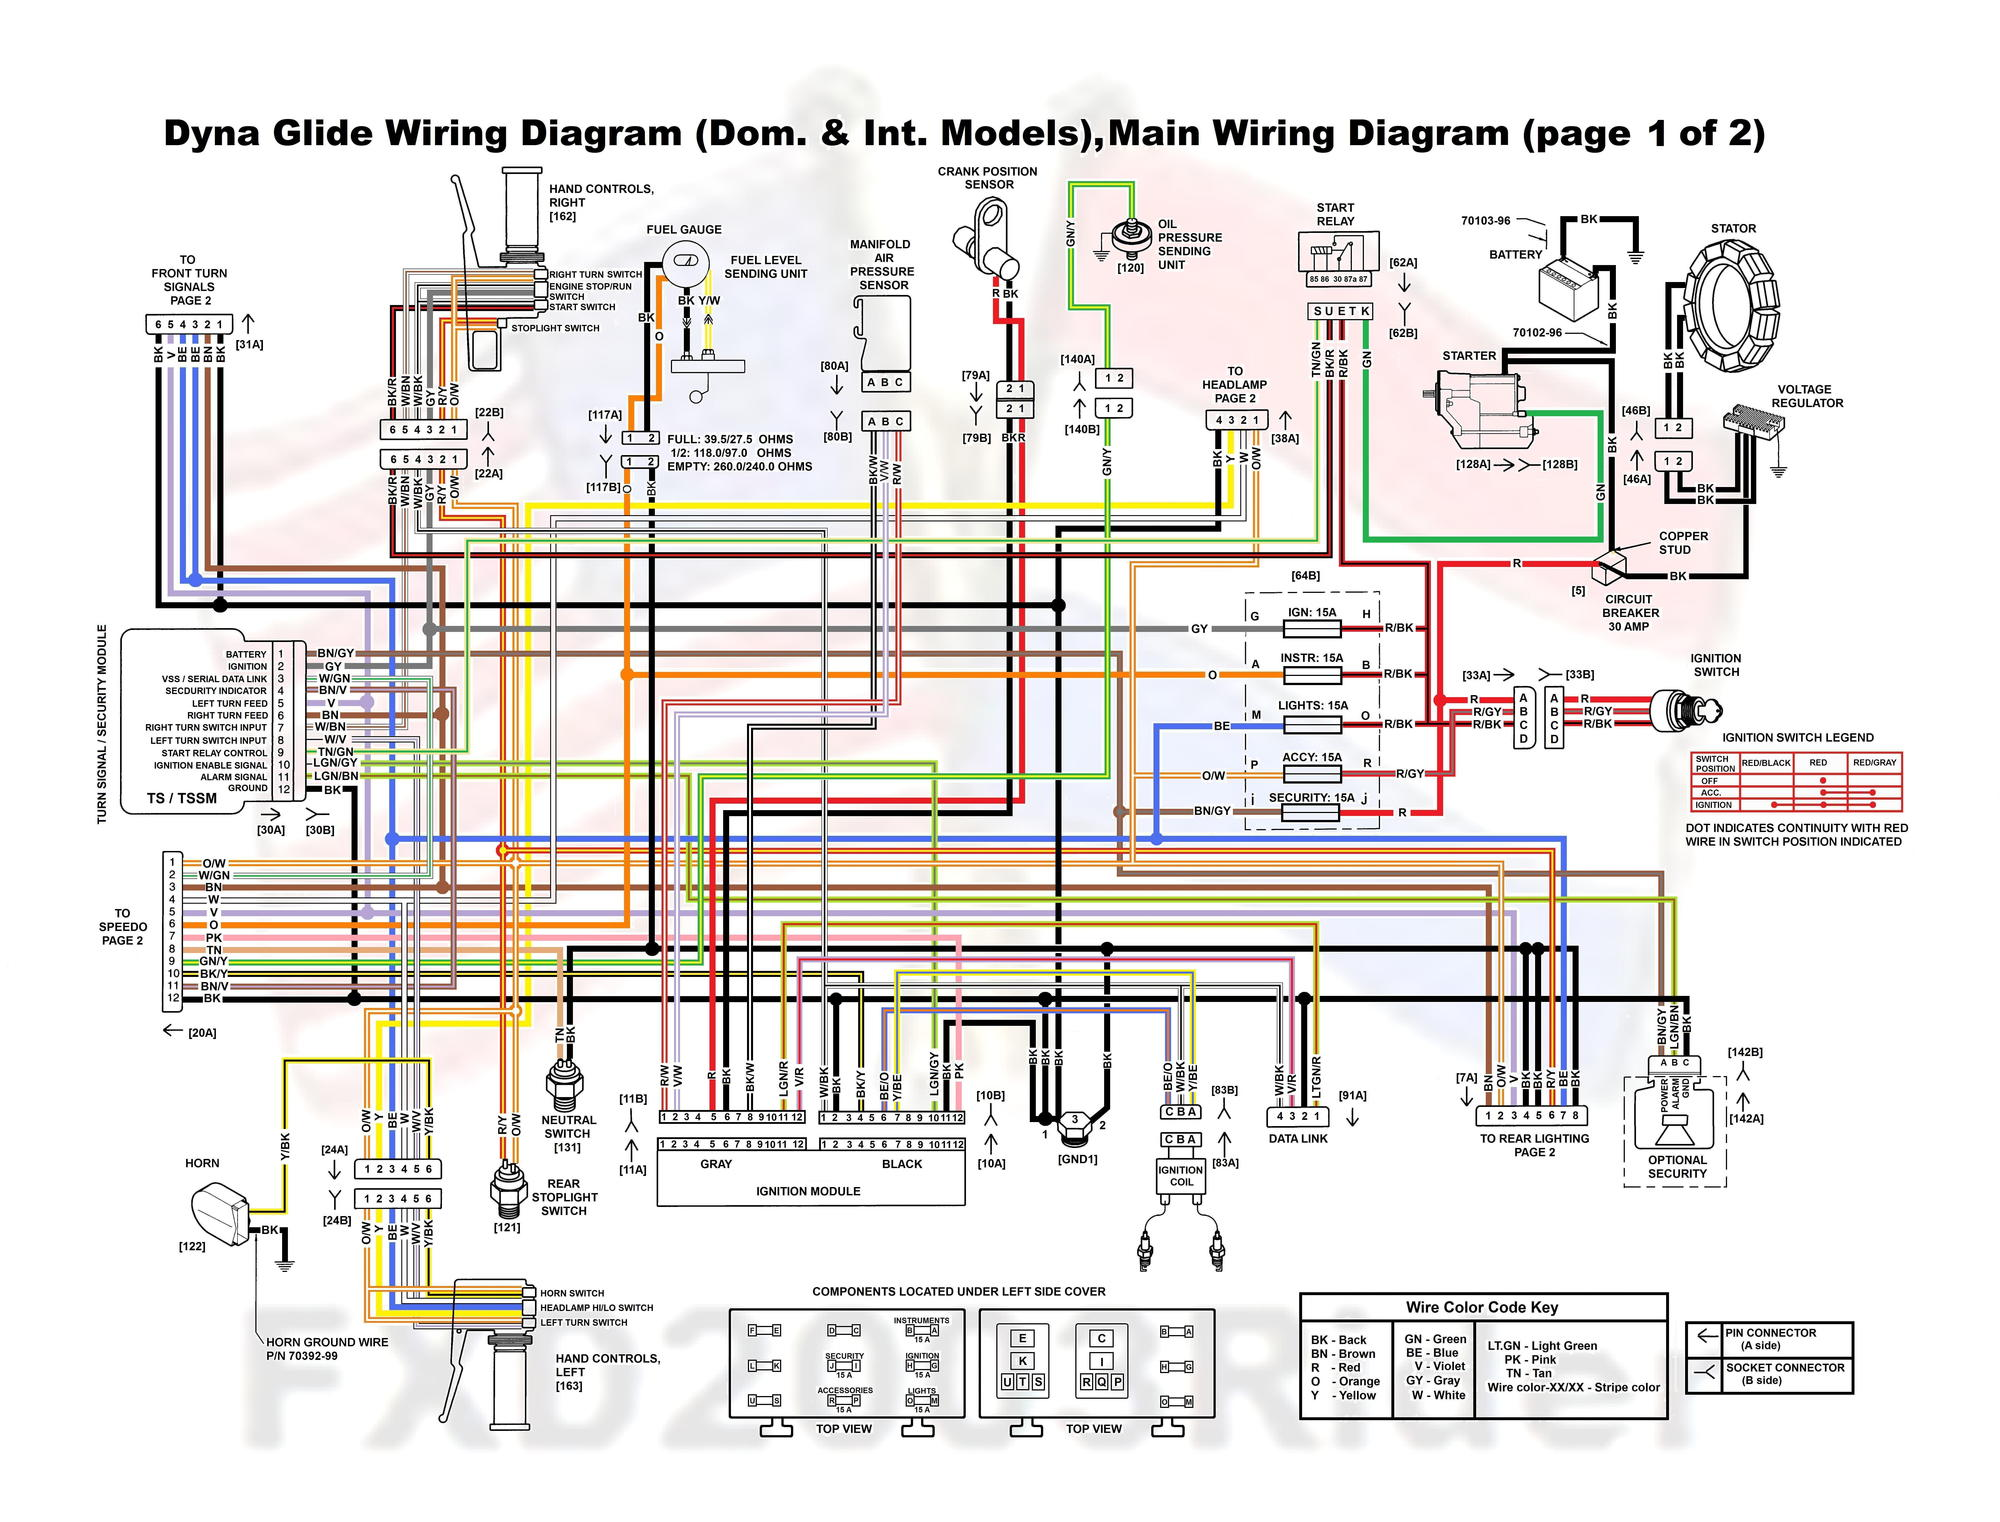 harley radio wiring diagram free download schematic home simple harley wiring diagram street glide harley davidson radio wiring harness diagram #11